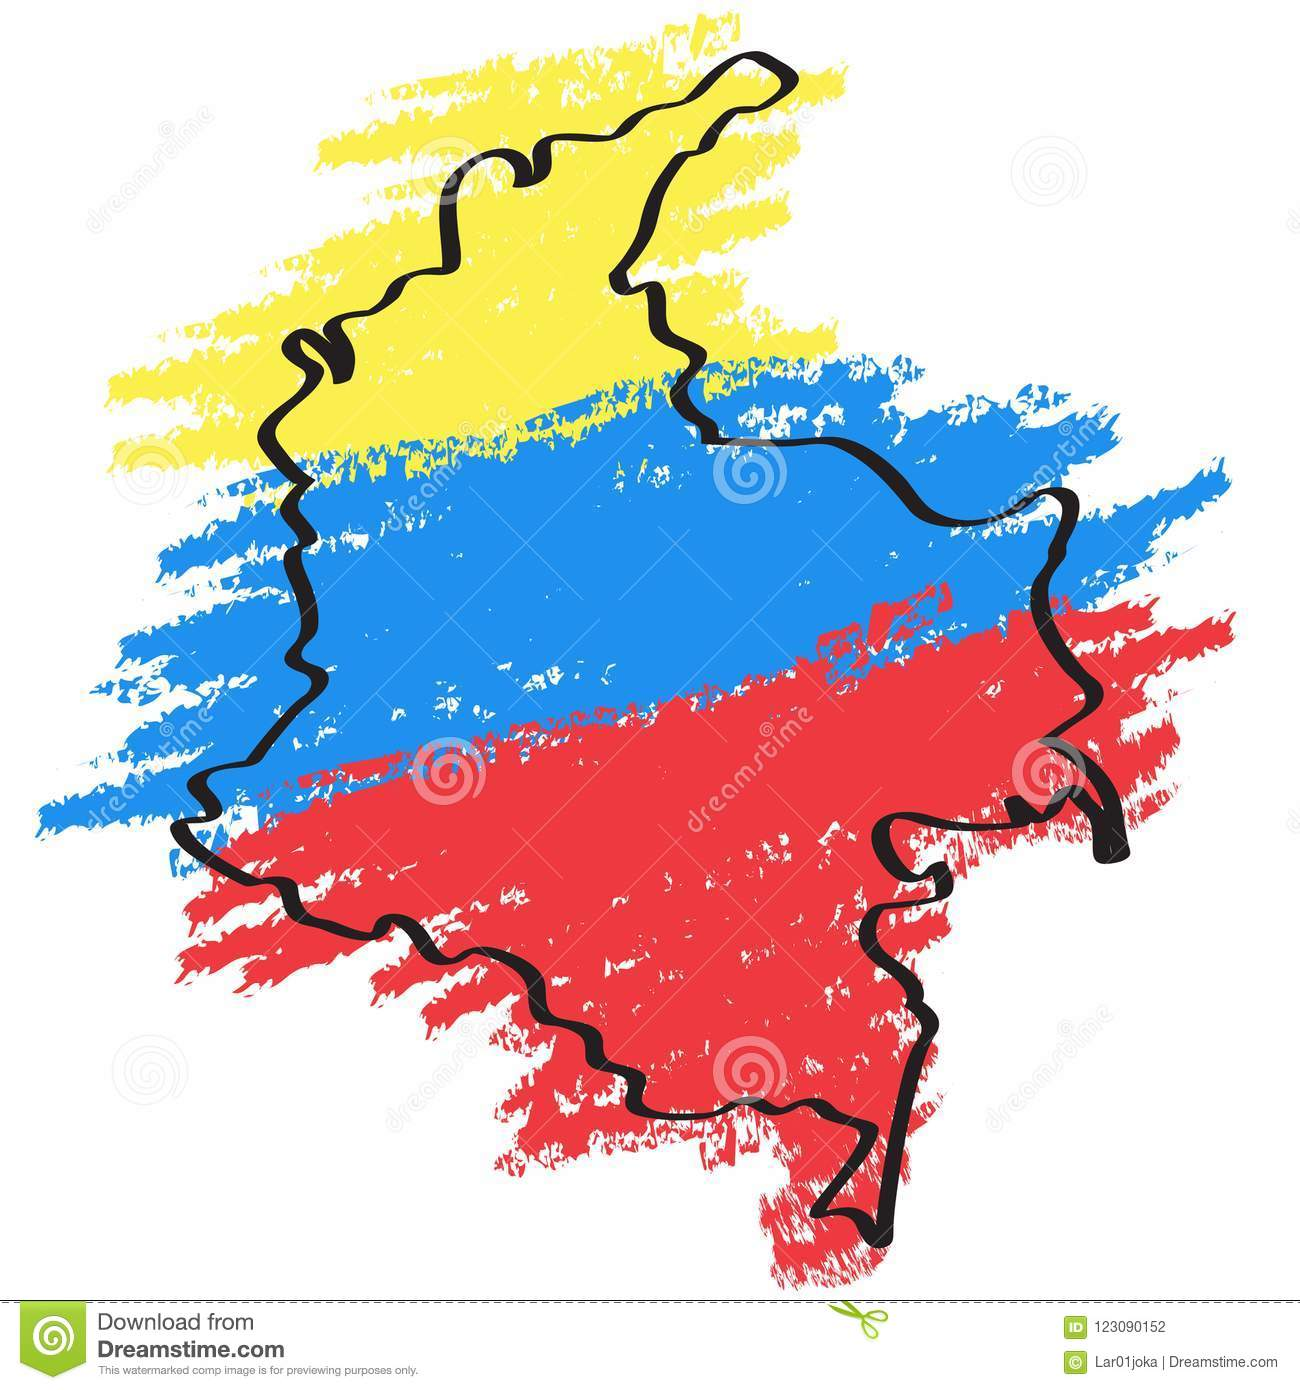 Sketch Of A Map Of Colombia Stock Vector - Illustration of ... on map with capital of colombia, colored map of colombia, street map of medellin colombia, satellite maps colombia, map of colombia departments, political map of colombia, major river map of colombia, map of colombia small, detailed map of colombia, palace of justice colombia, map colombia only, map of colombia and united states, map of colombia with cities, lost city trek colombia, bogota colombia, map of colombia south america, 3d map of colombia, maap s colombia, map of colombia and surrounding countries, map of el bordo colombia,